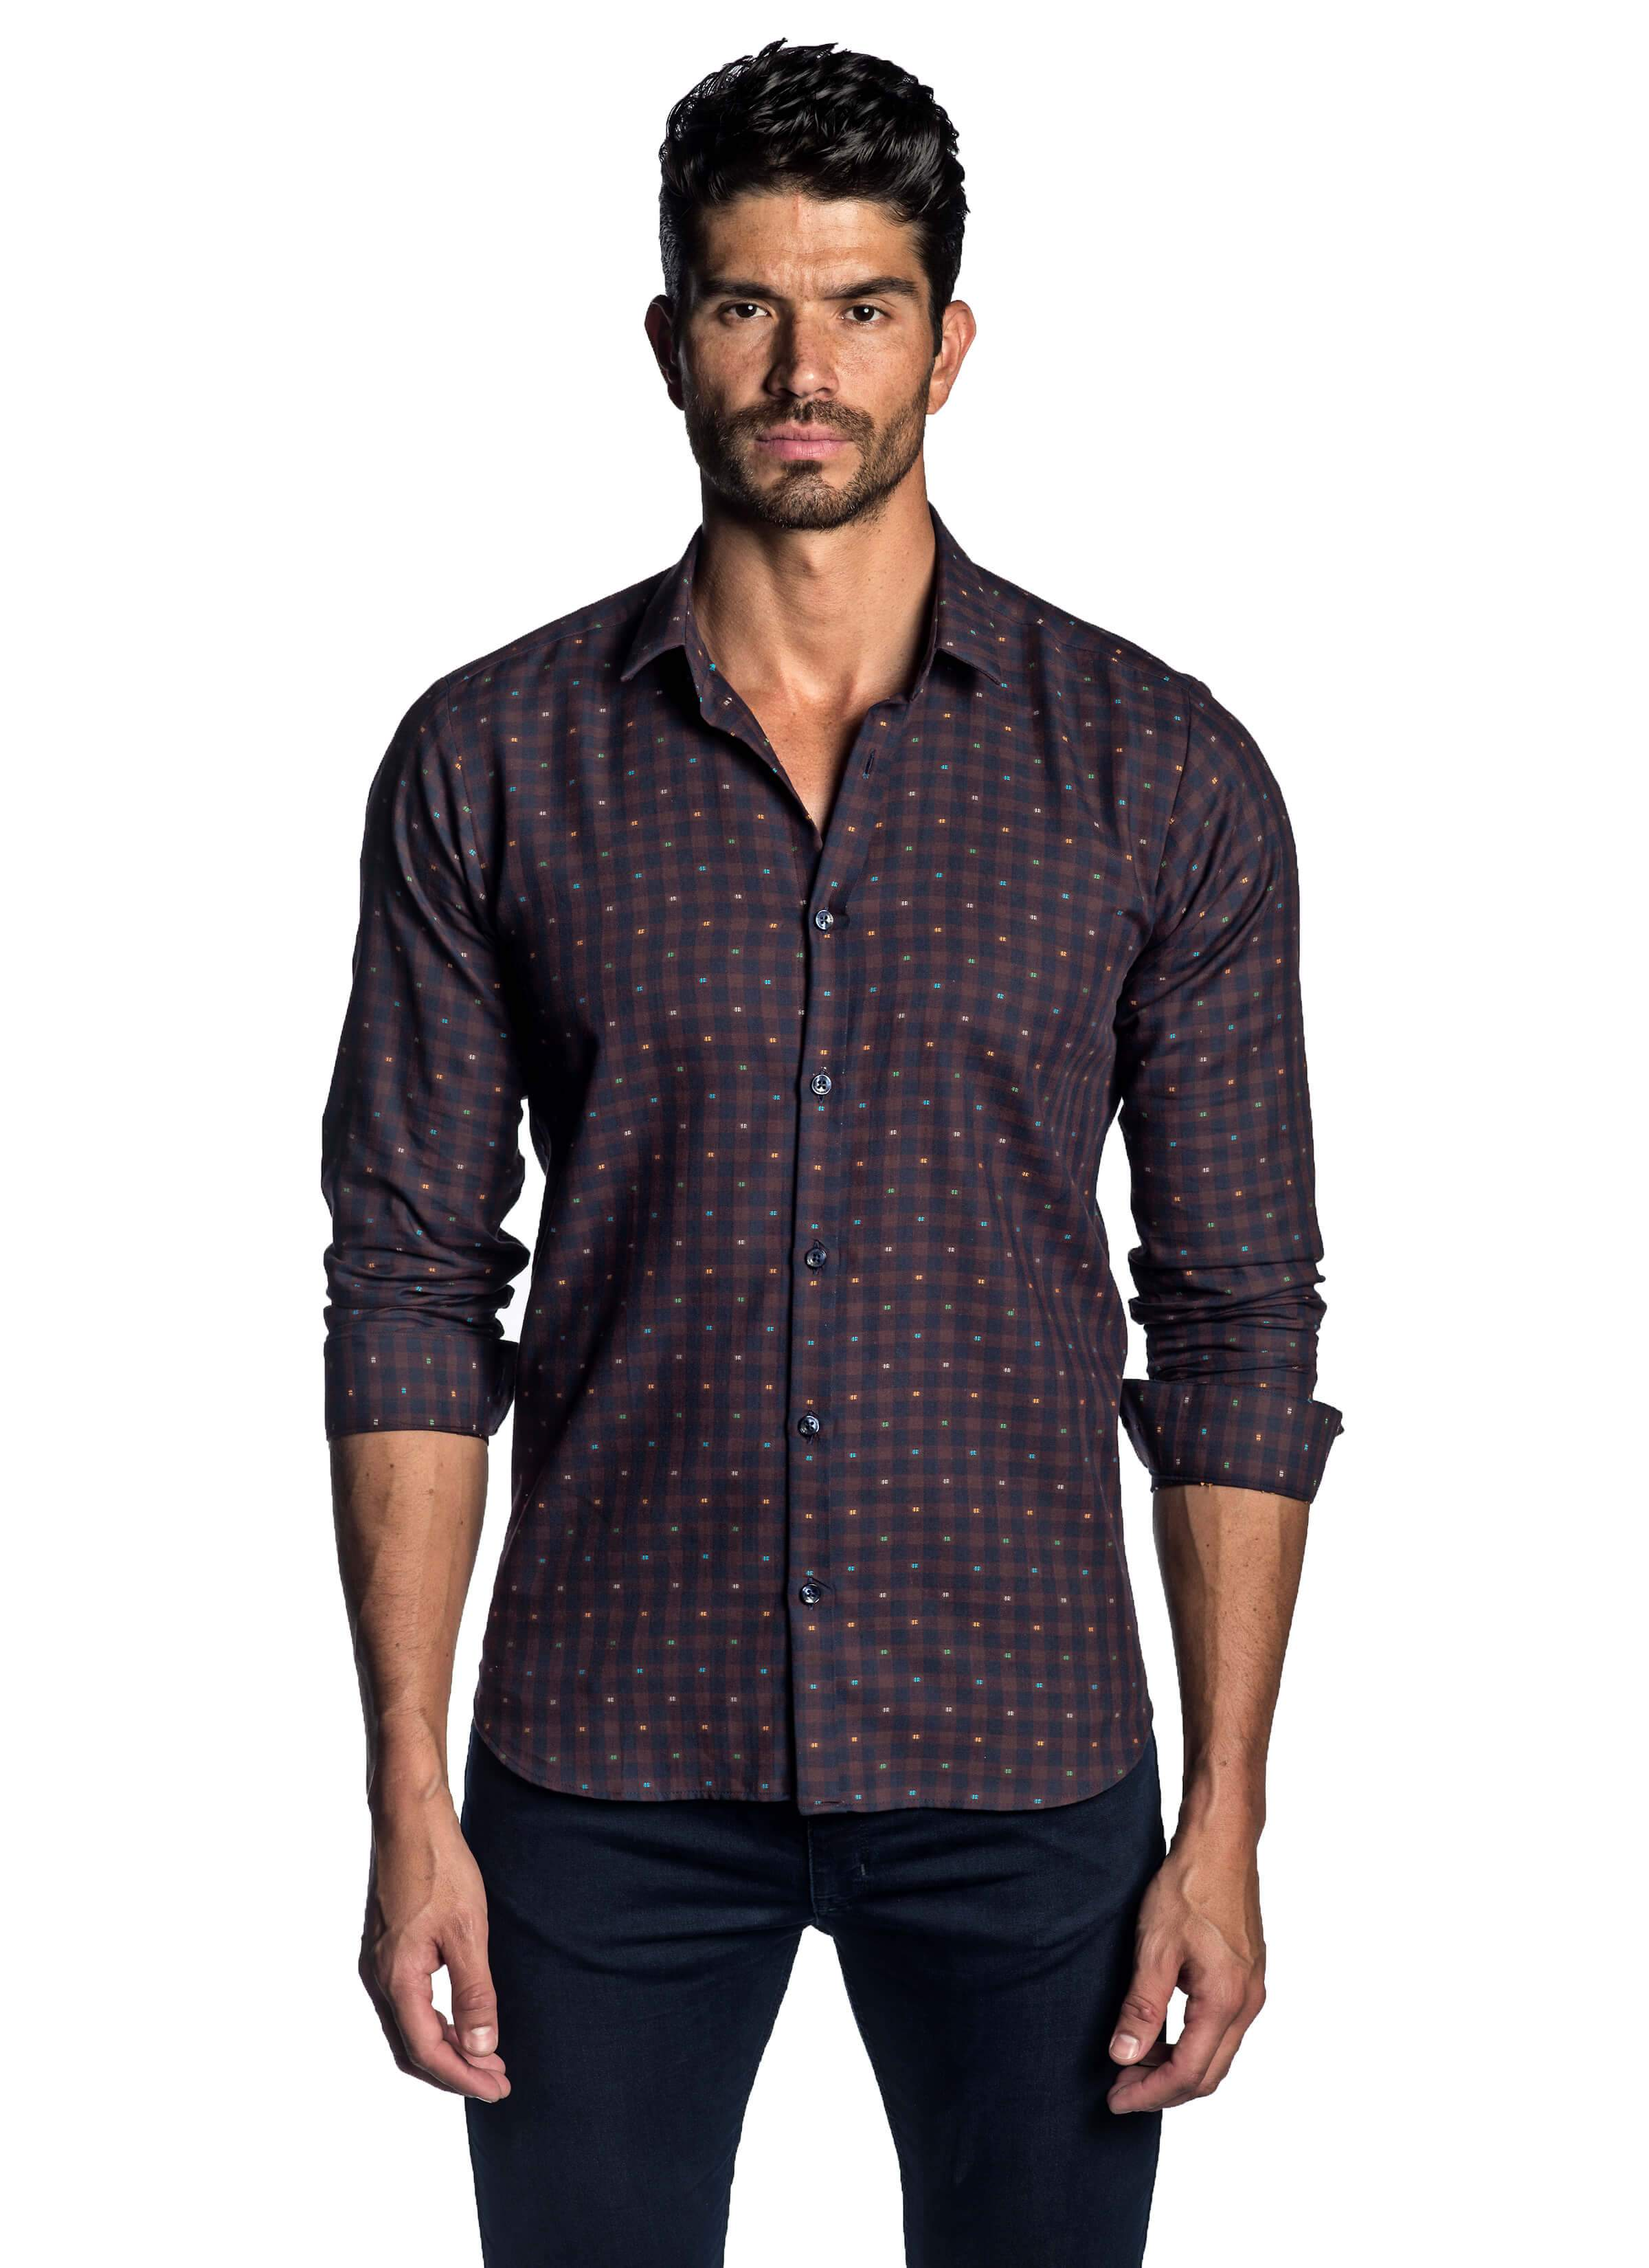 Navy and Burgundy Check Multicolor Dobby Shirt for Men AH-T-2052 - Jared Lang